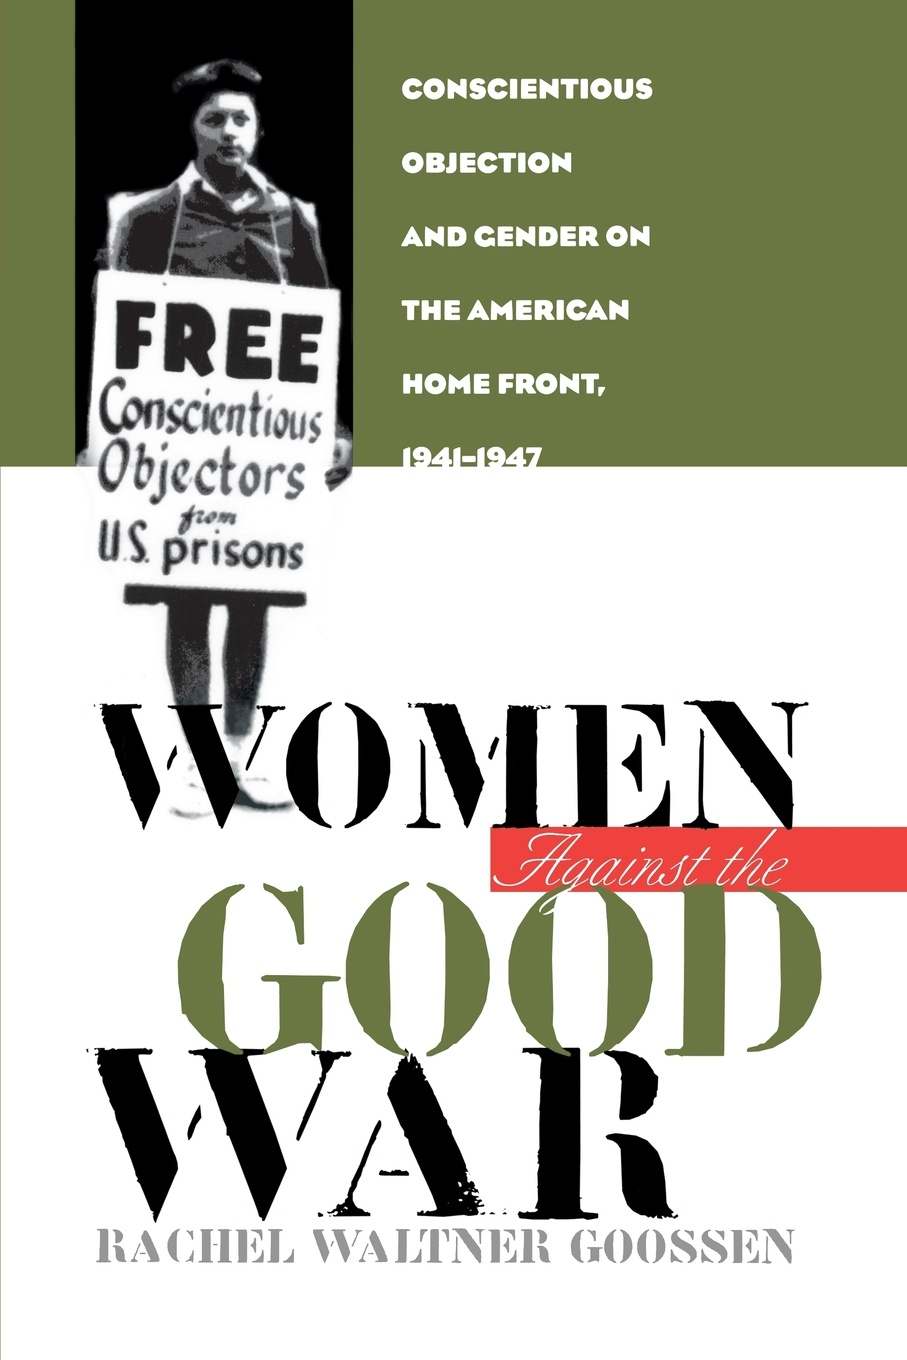 Rachel Waltner Goossen Women Against the Good War. Conscientious Objection and Gender on the American Home Front, 1941-1947